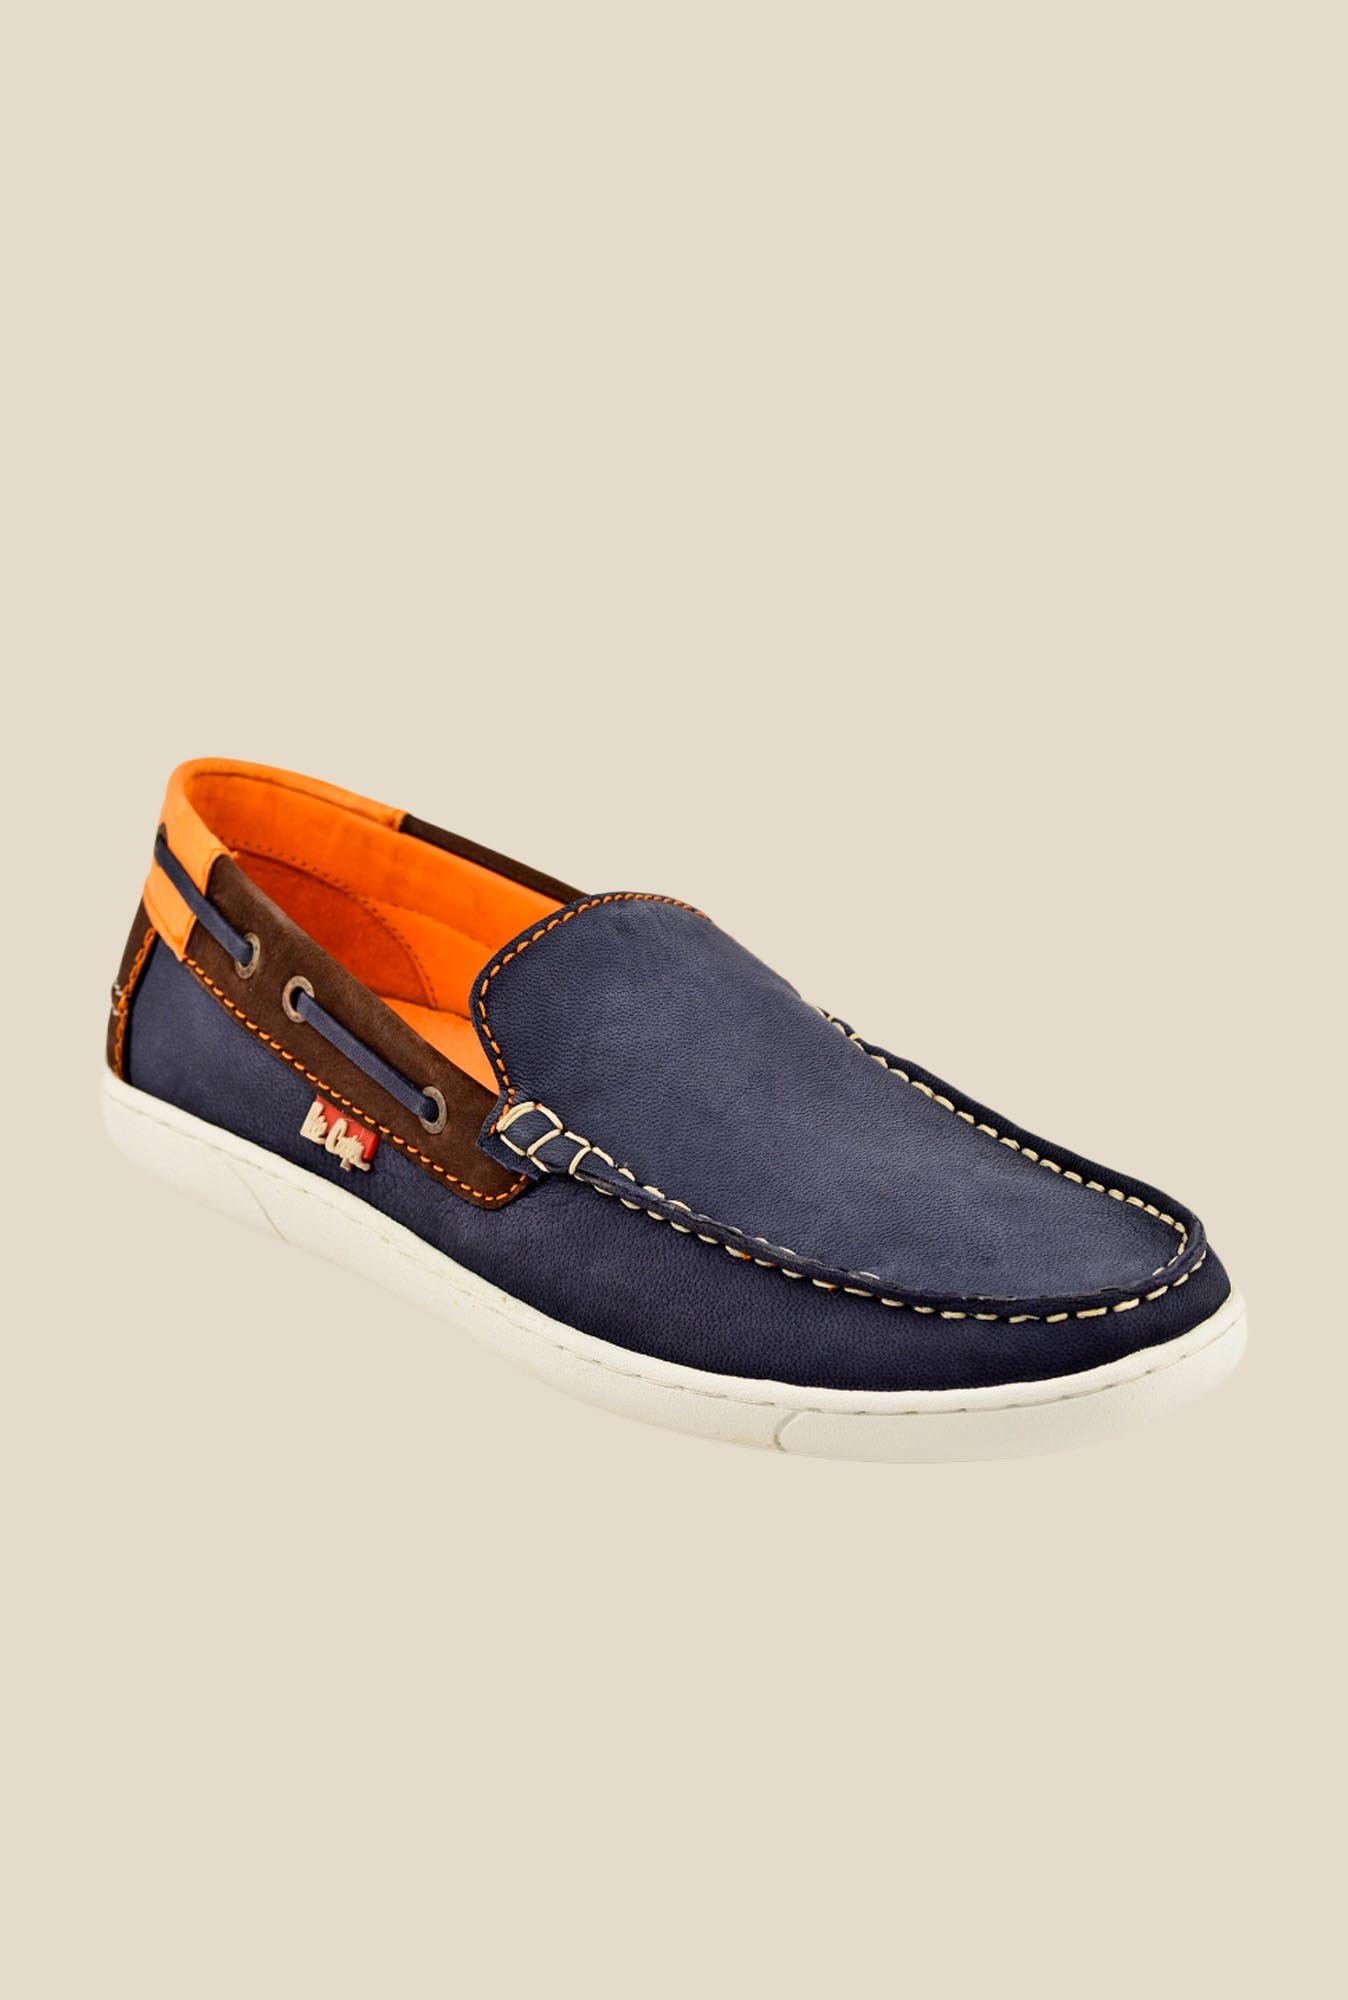 Lee Cooper Navy Casual Loafers